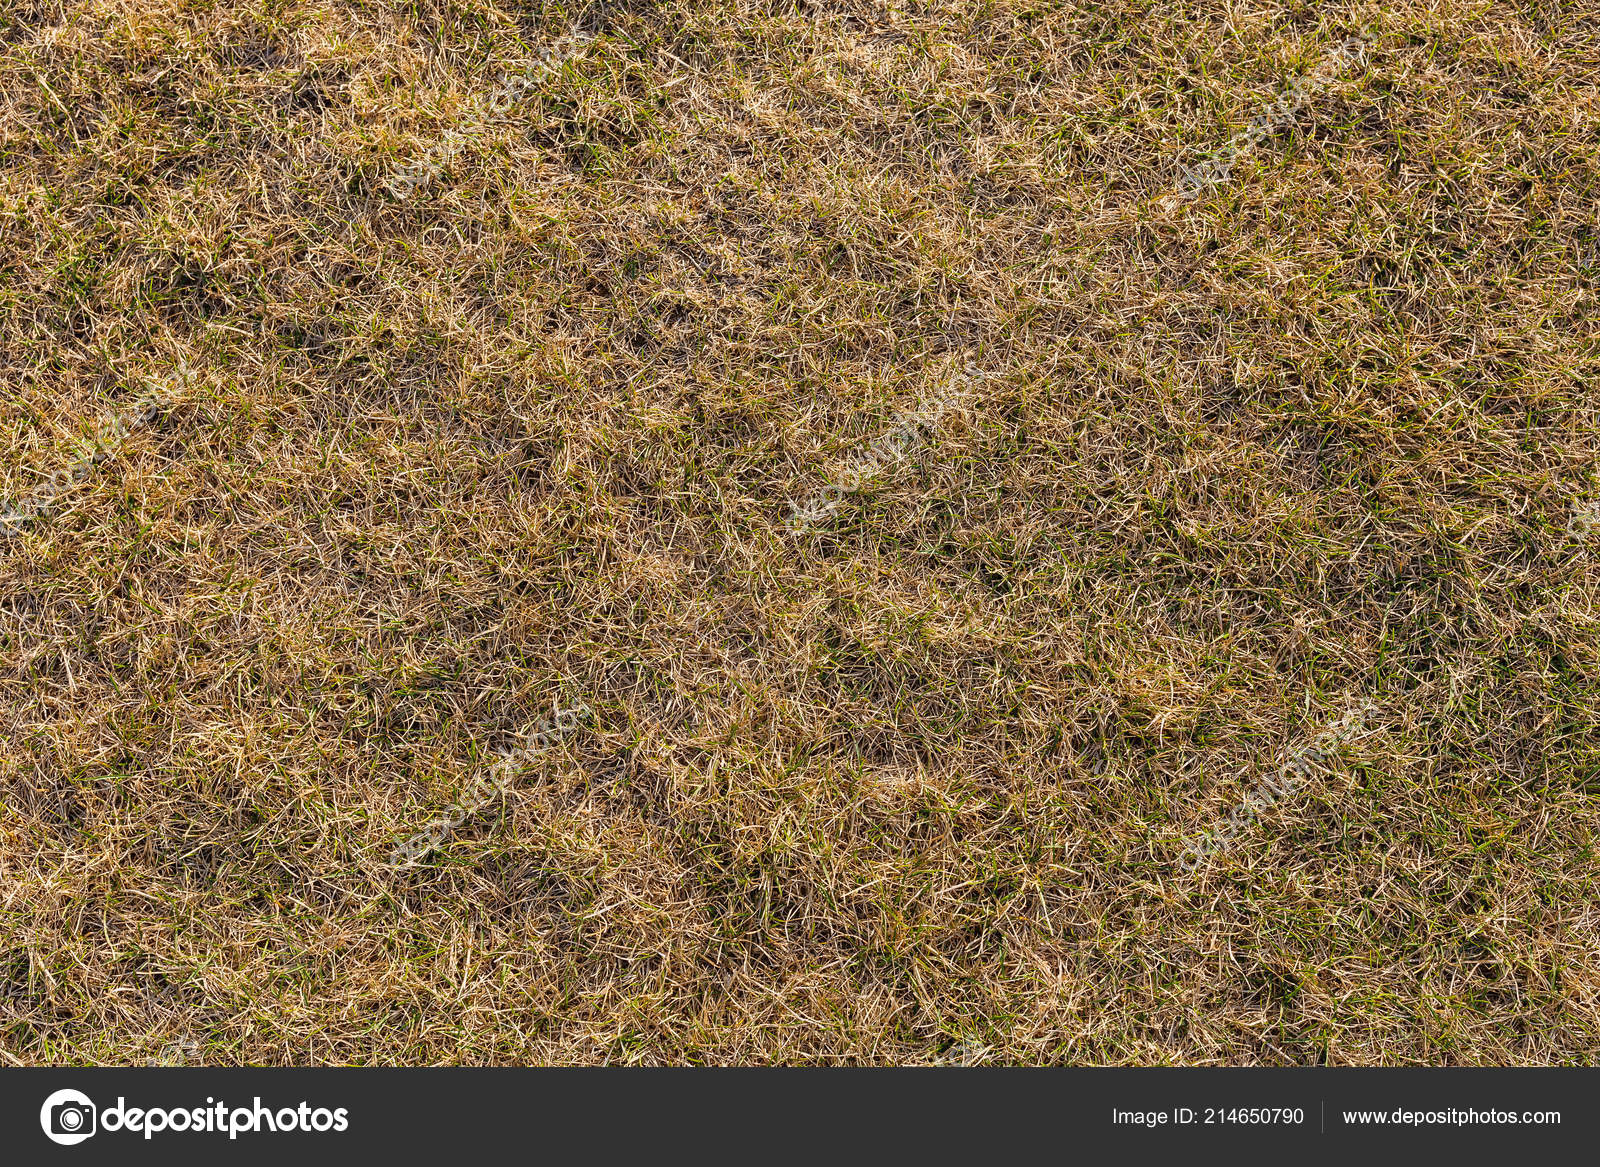 Ground Texture Dry Grass Small Rare Tufts Green Plants